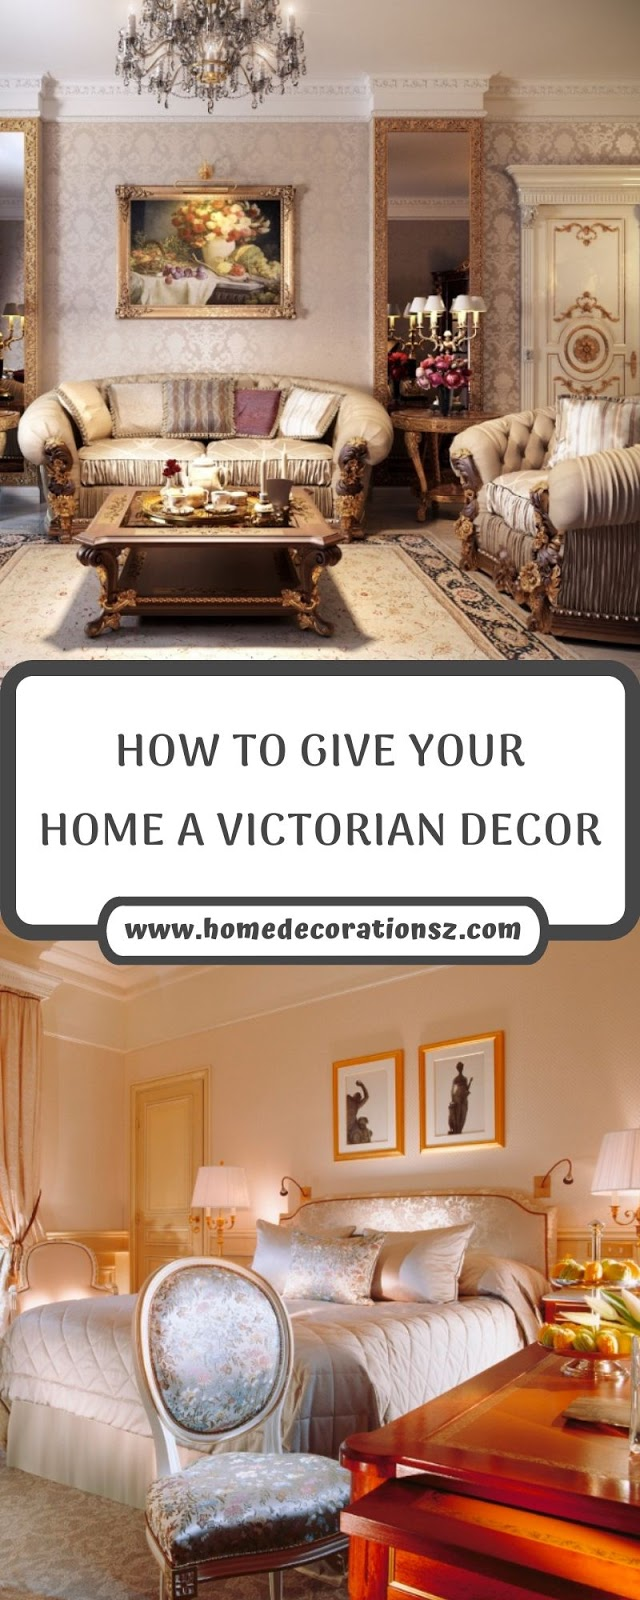 HOW TO GIVE YOUR HOME A VICTORIAN DECOR